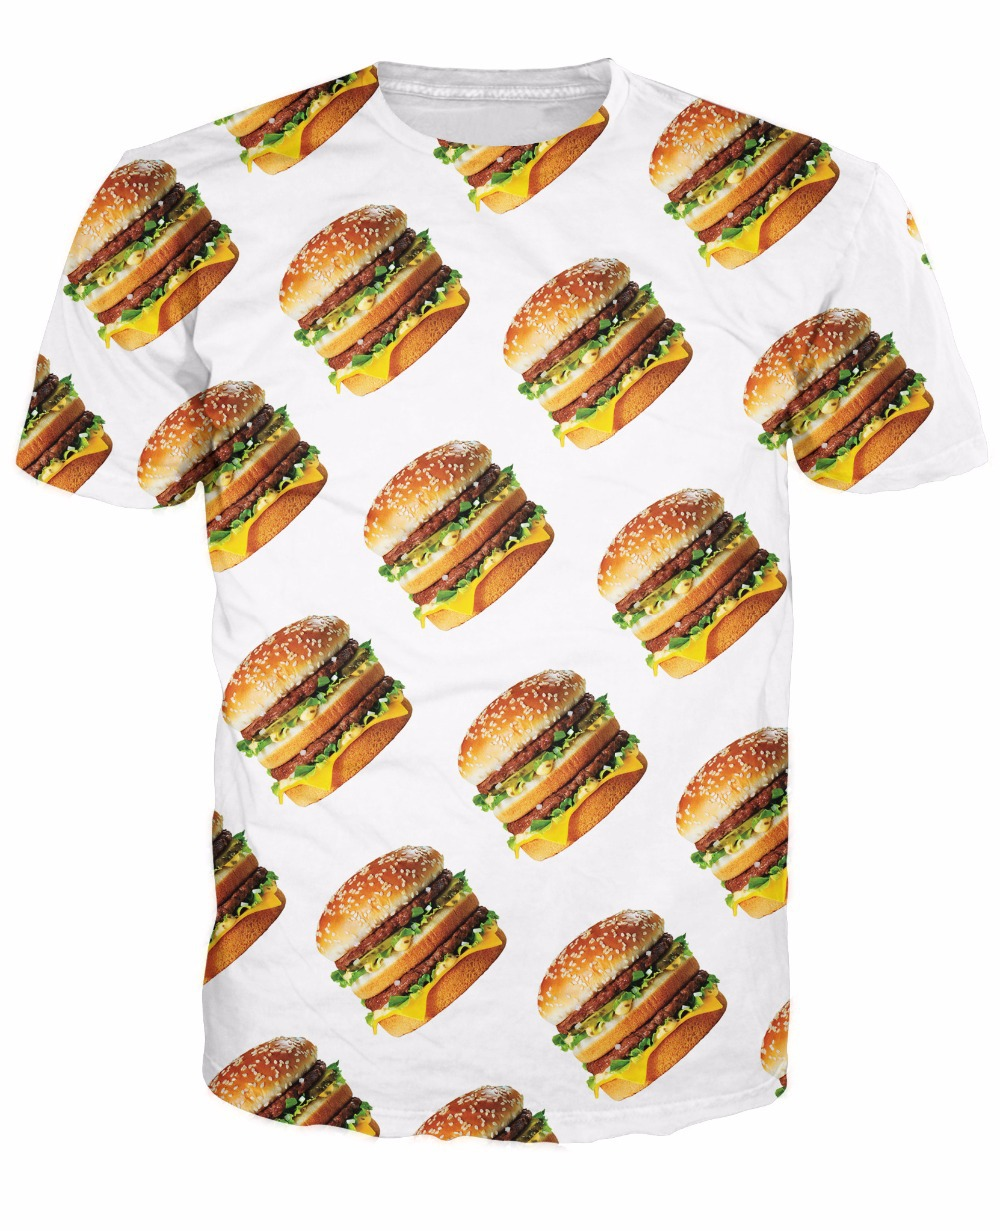 Design t shirt on mac - Big Mac T Shirt The Famous Fast Food Cheeseburger 3d Print Casaul T Shirt Summer Style Fashion Clothing Tops Tee For Women Men